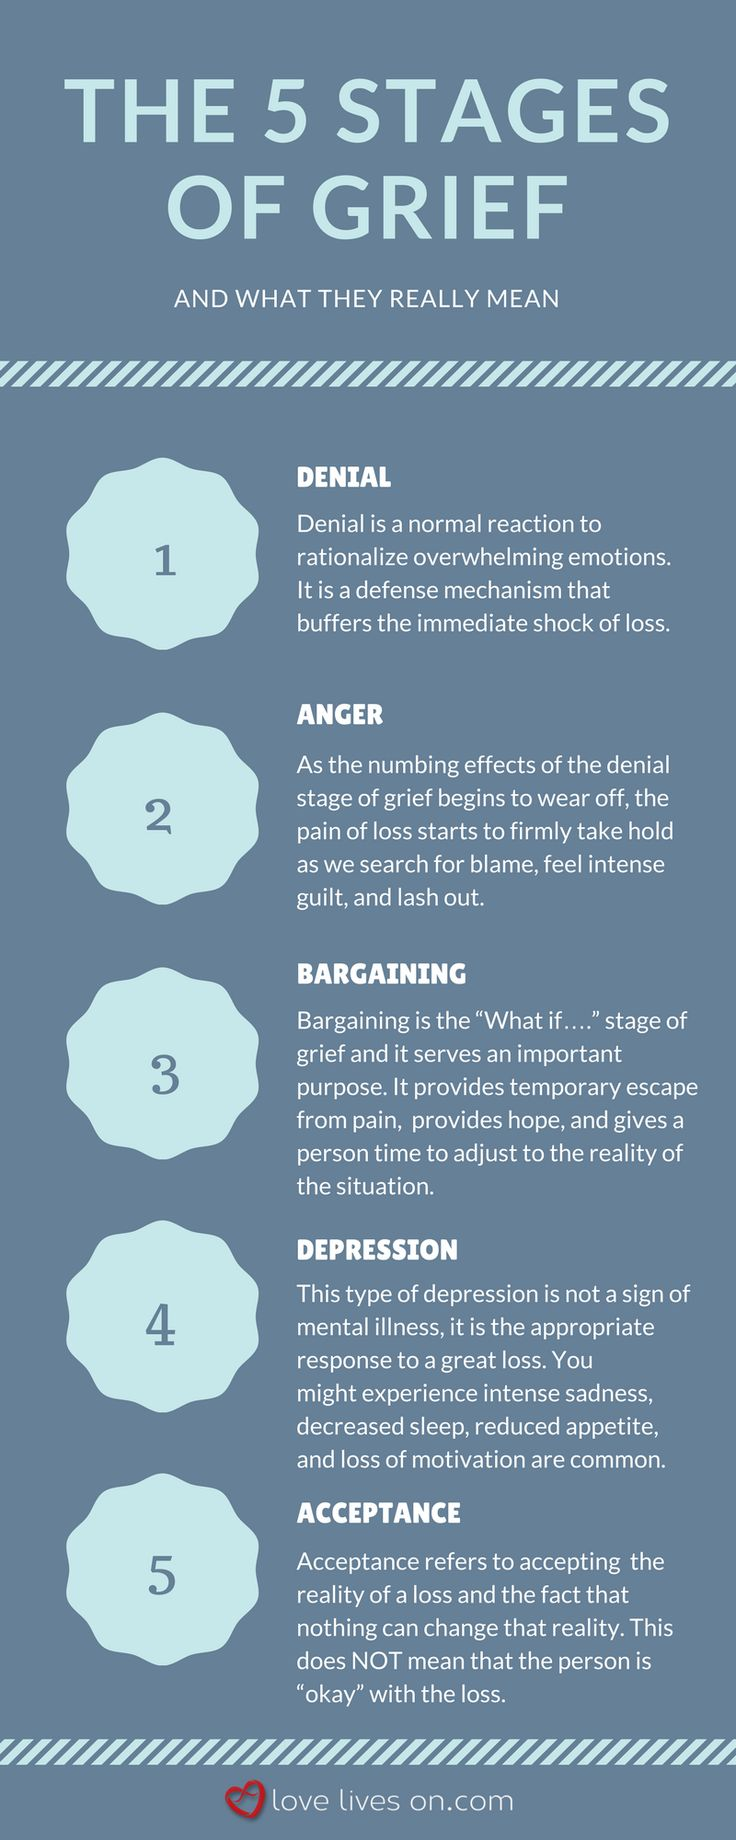 The 5 Stages of Grief & What They Really Mean. Read more on the 5 stages of grief & how to cope with each stage.